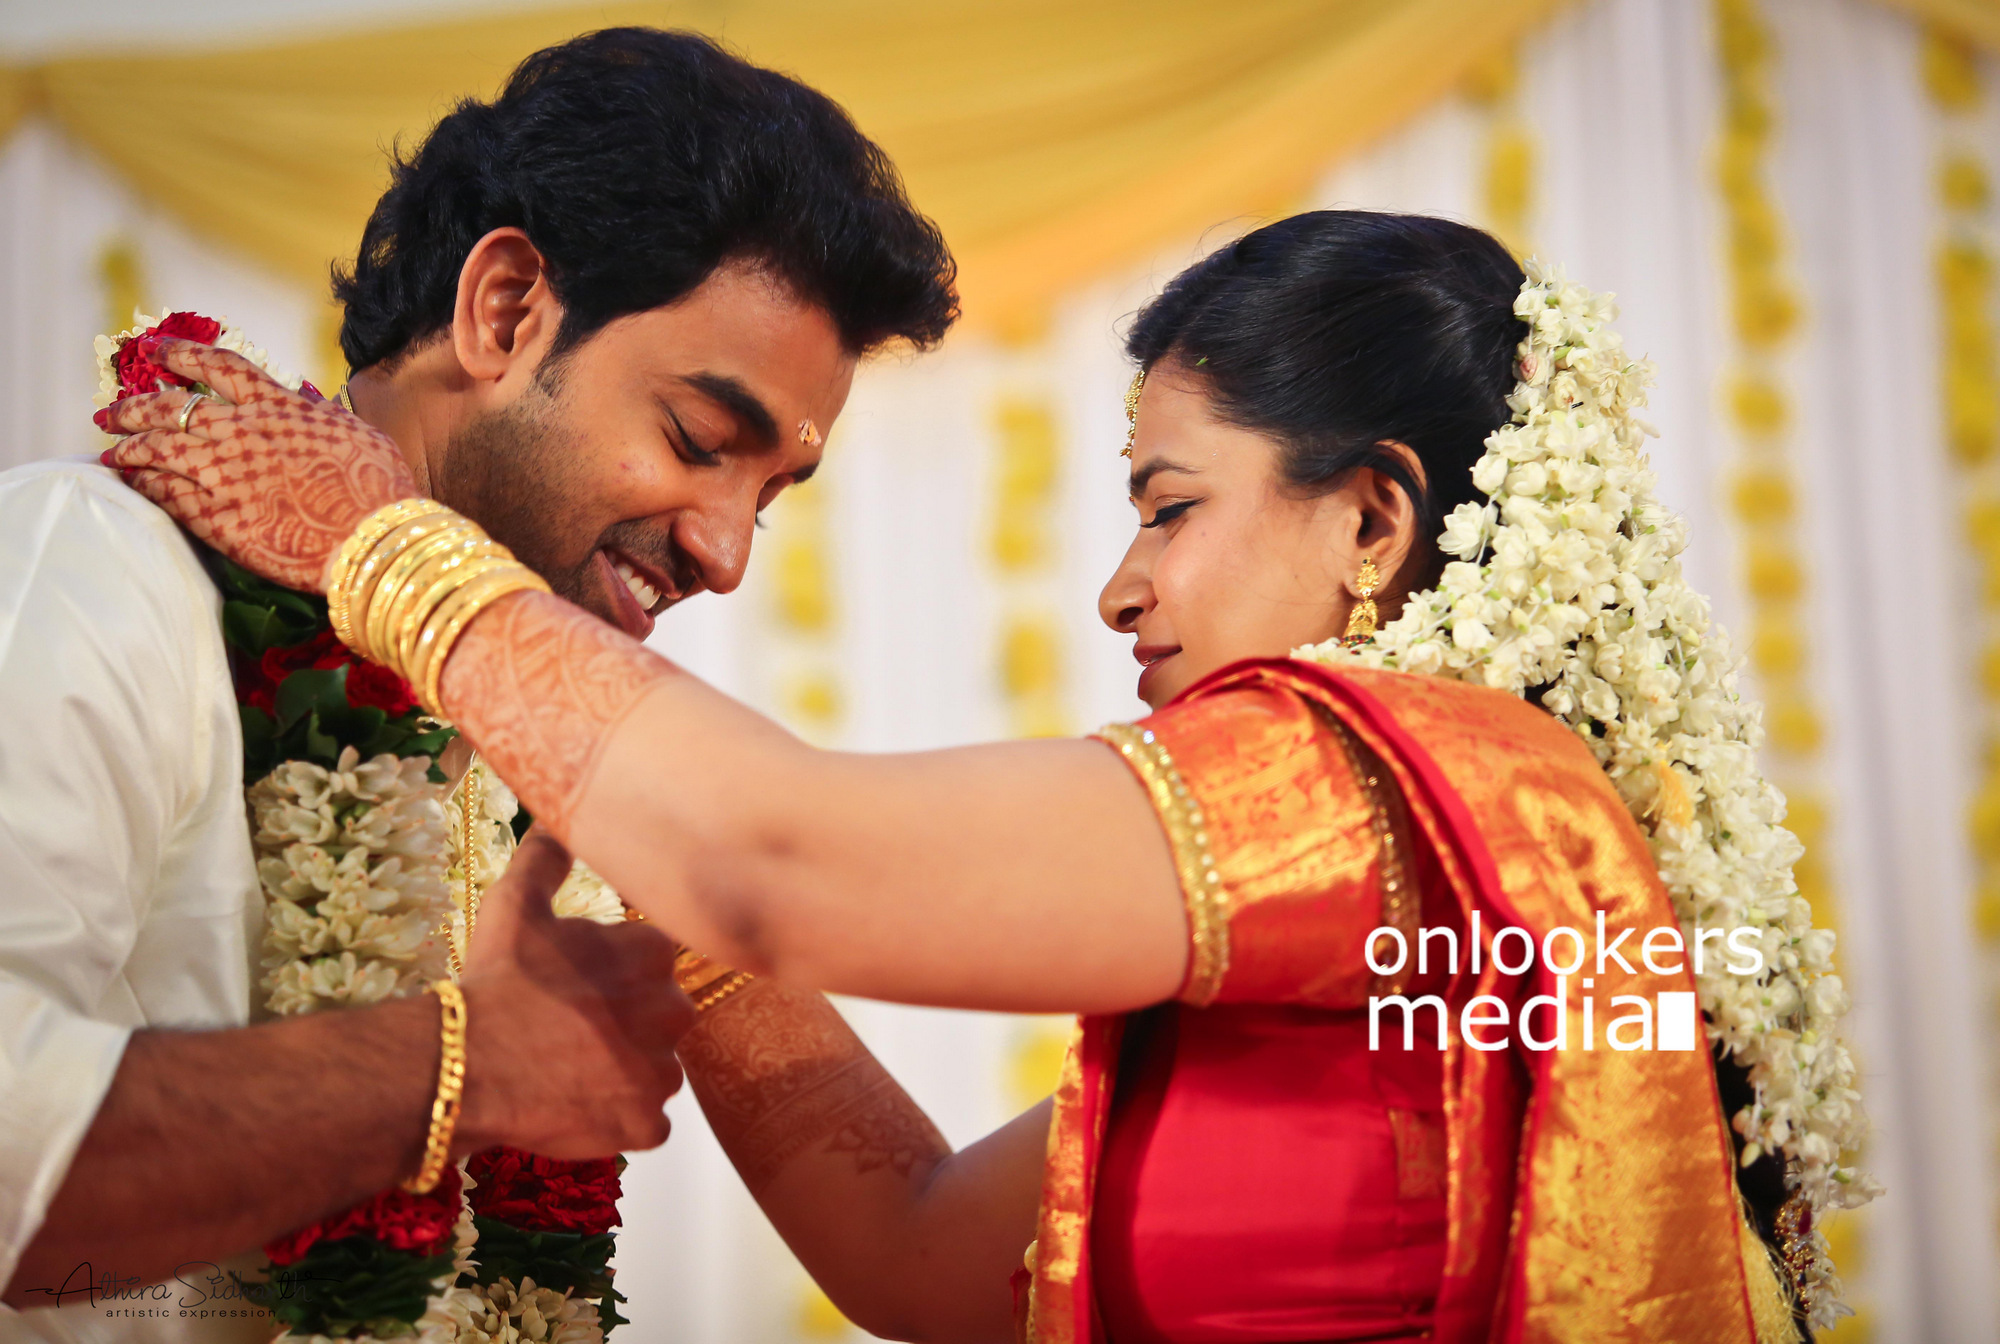 http://onlookersmedia.in/wp-content/uploads/2017/05/Malayalam-Actor-Siju-Wilson-Wedding-Stills-Photos-73.jpg